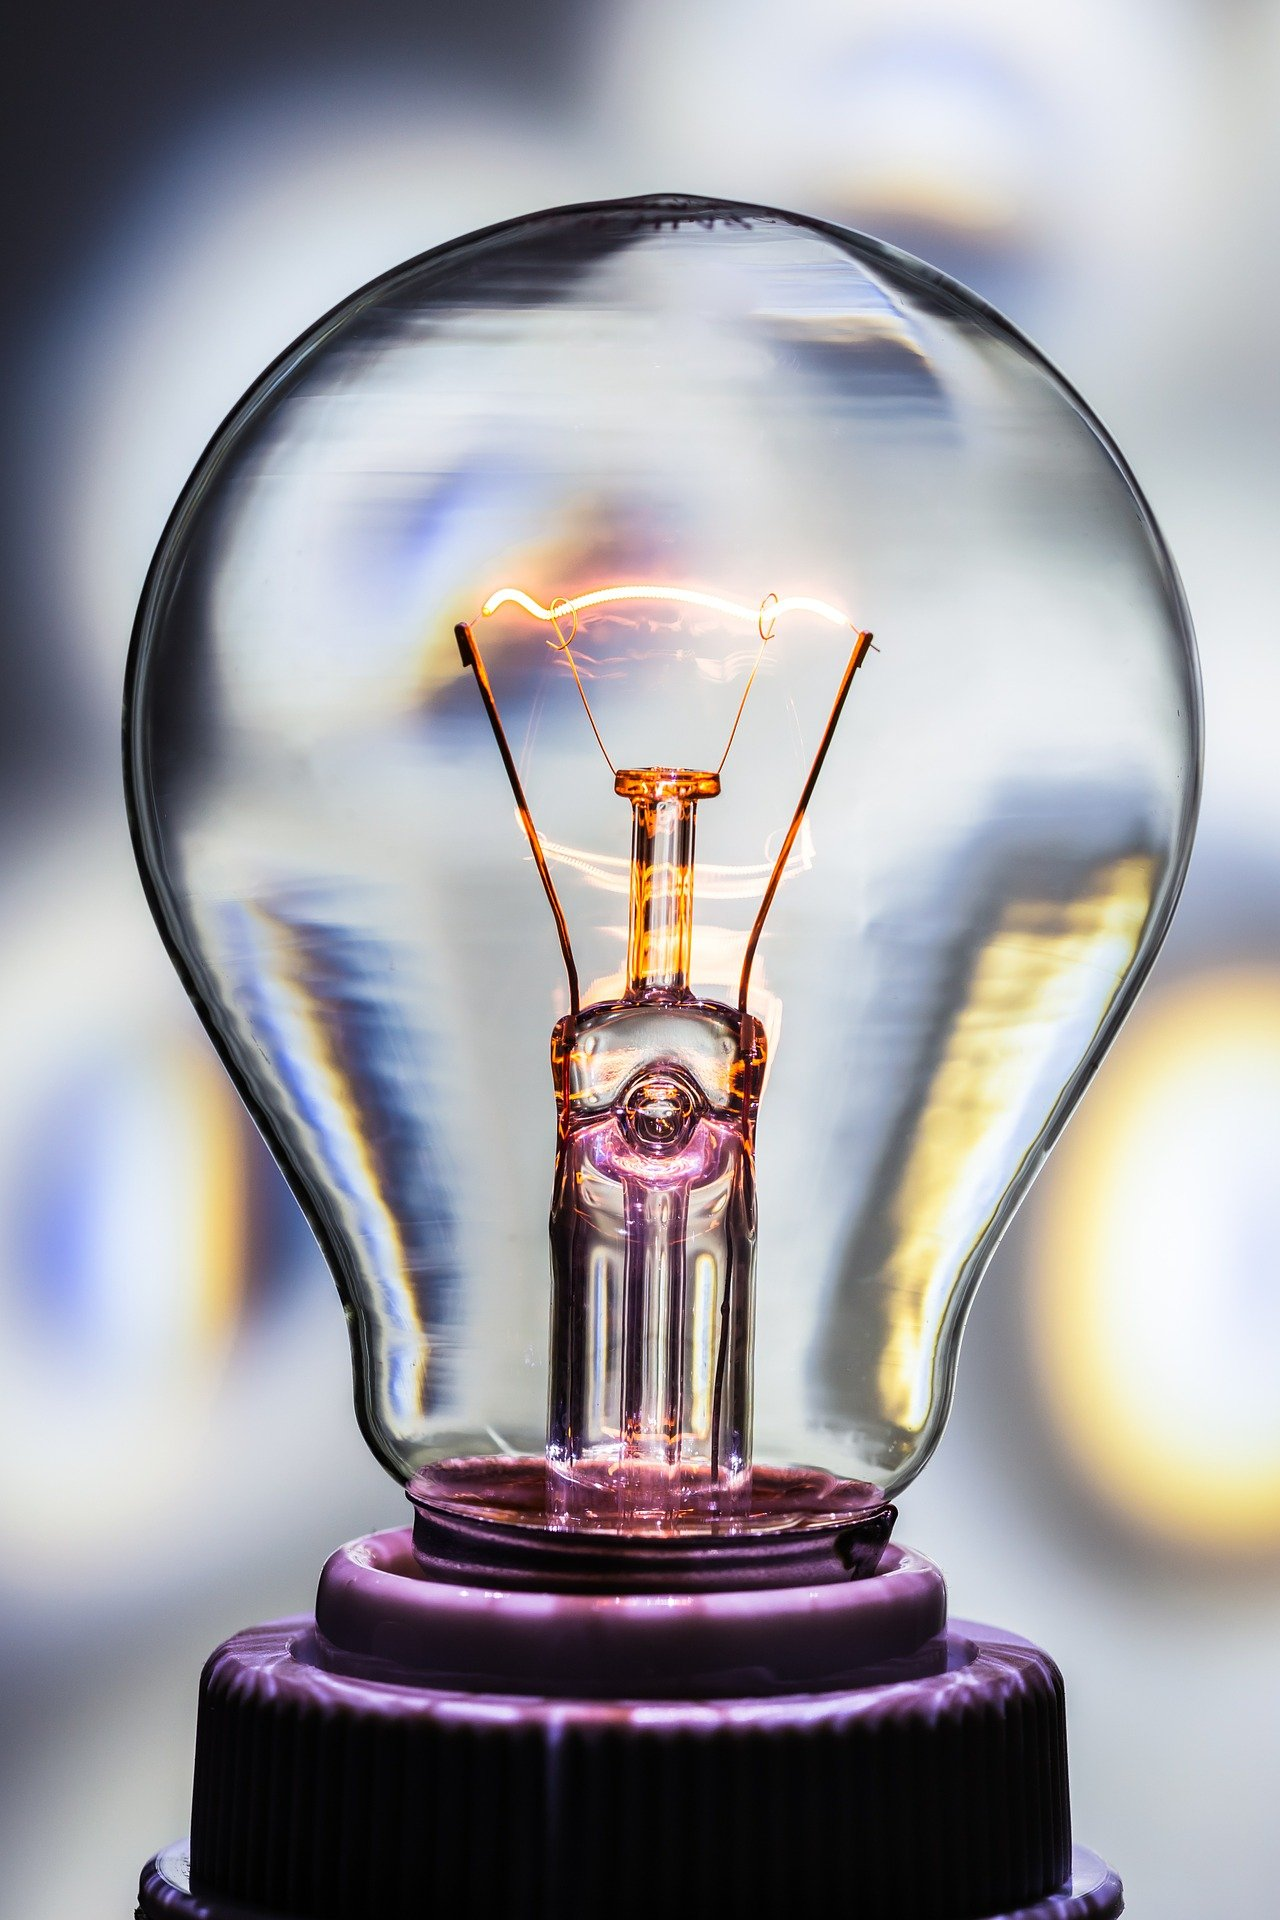 Bulb with electricty